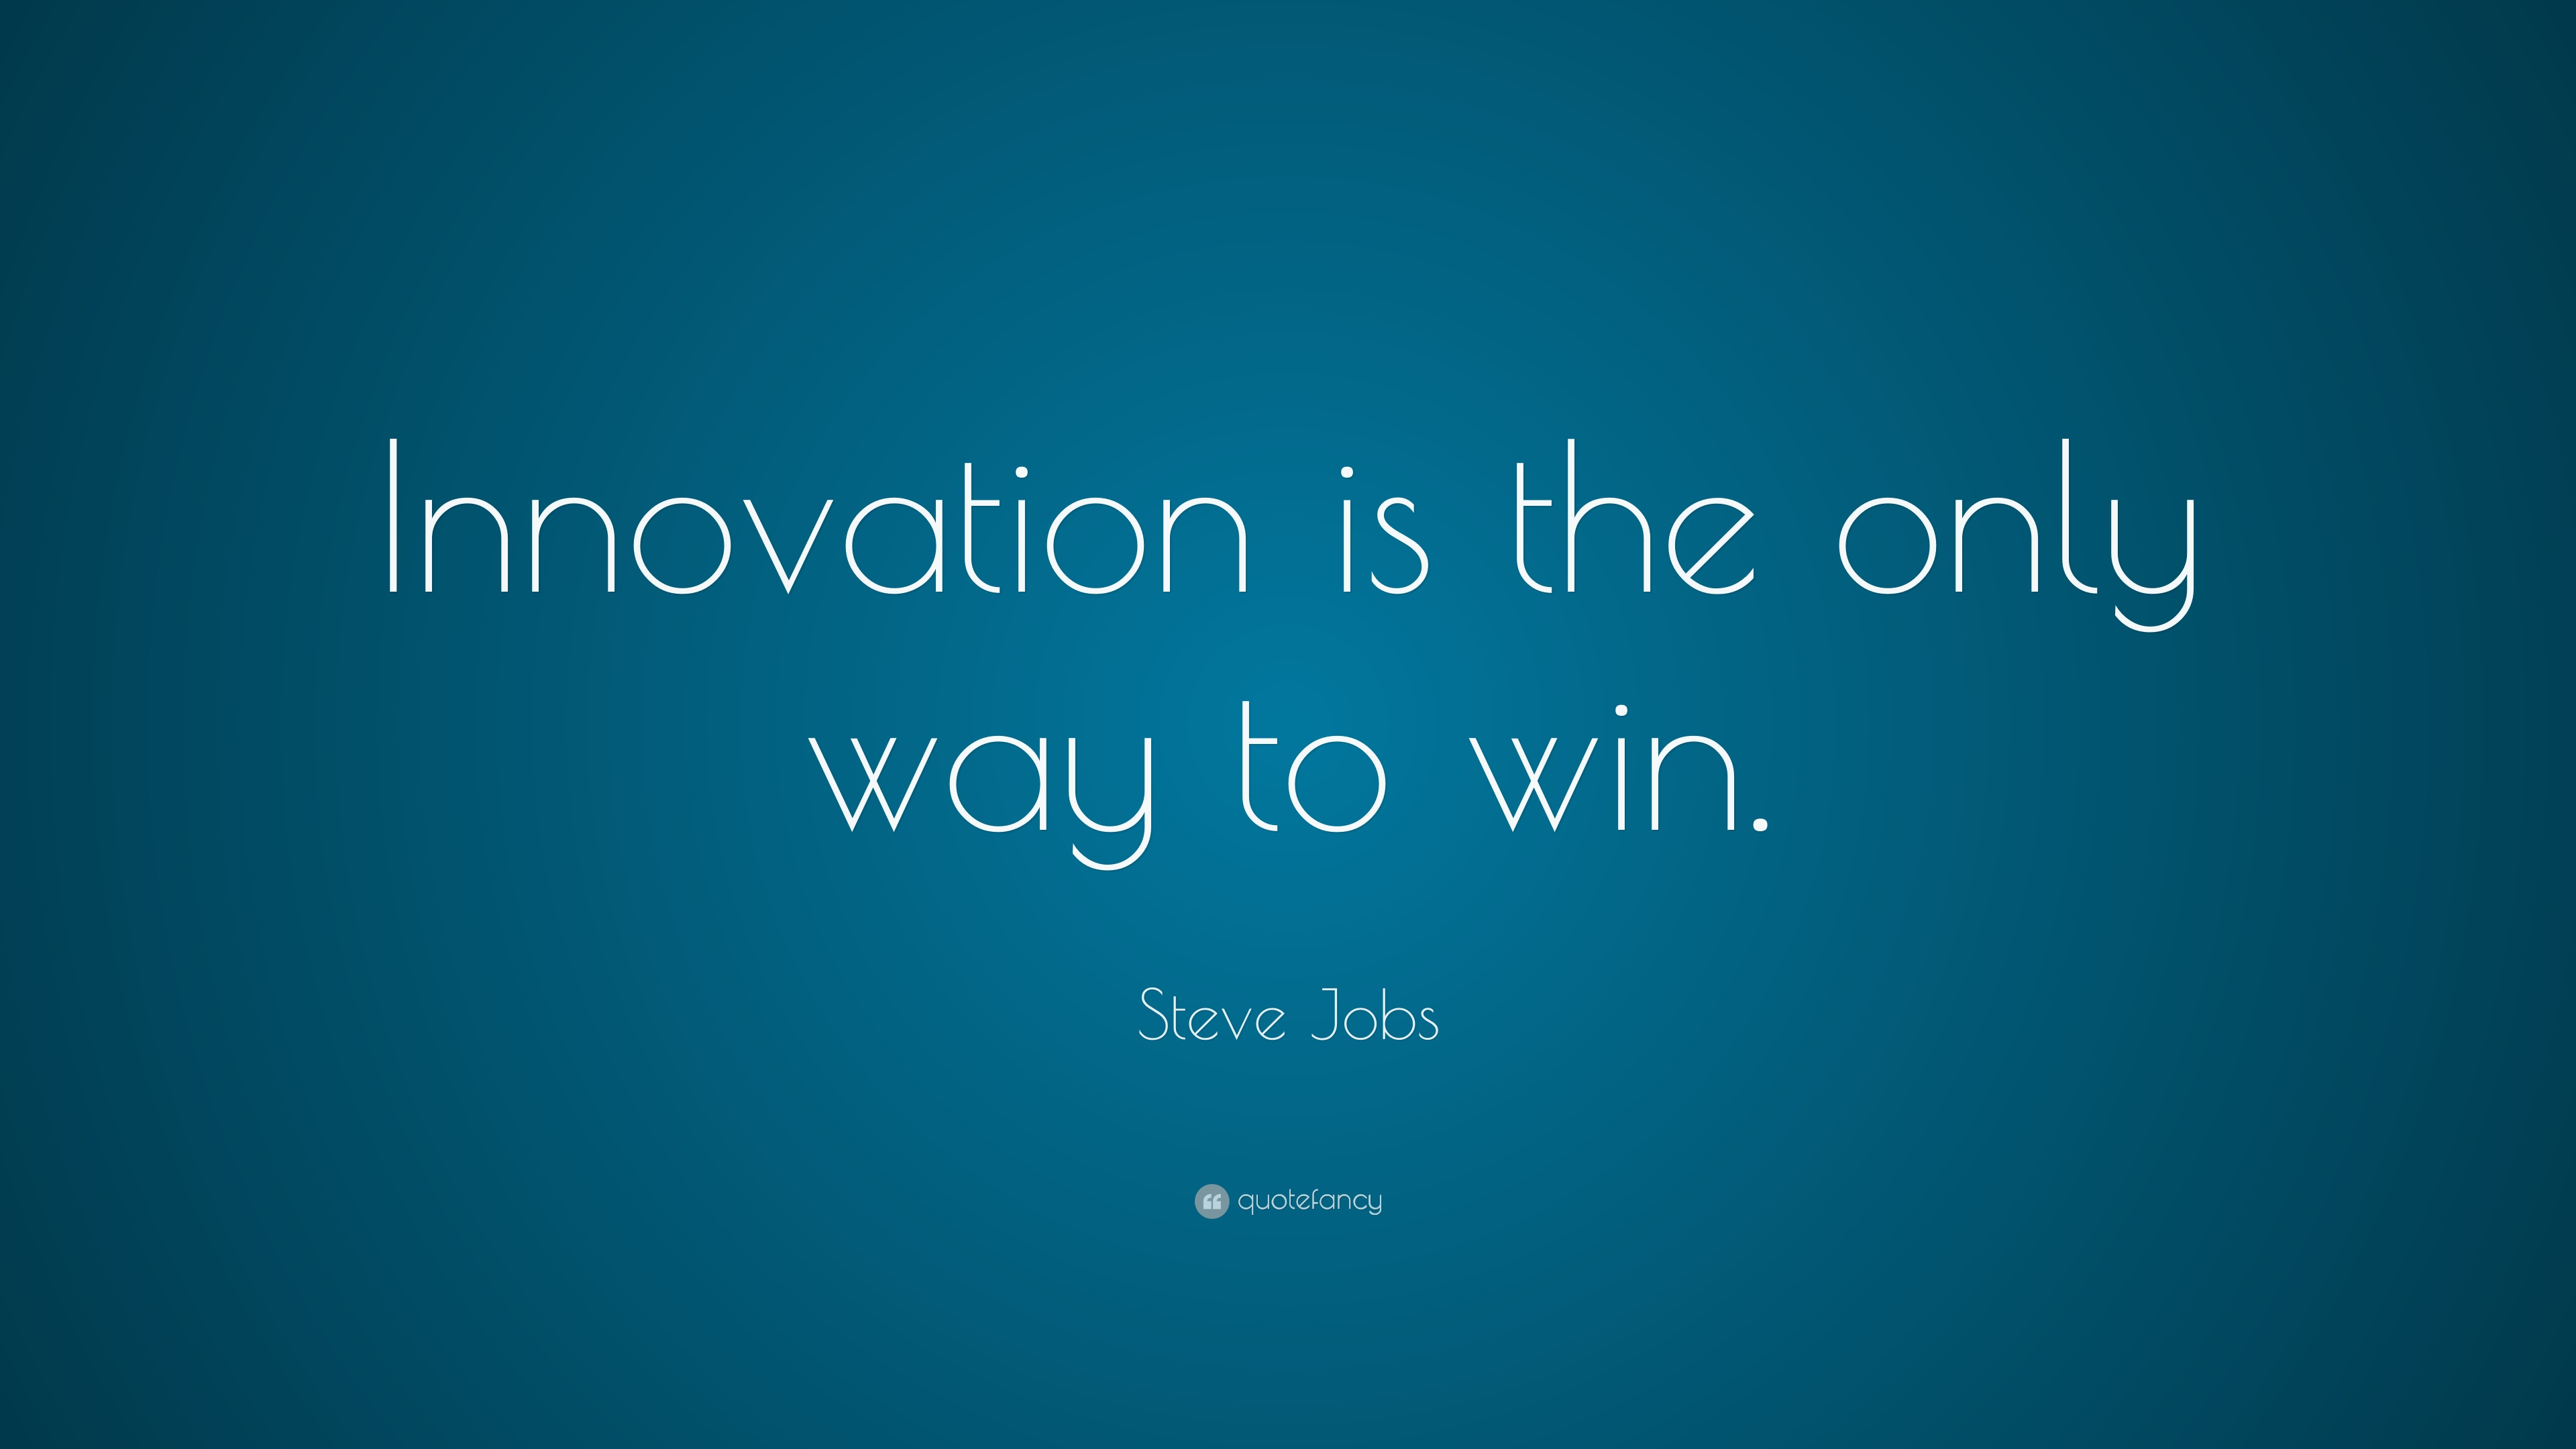 Quotes about Innovations (149 quotes)